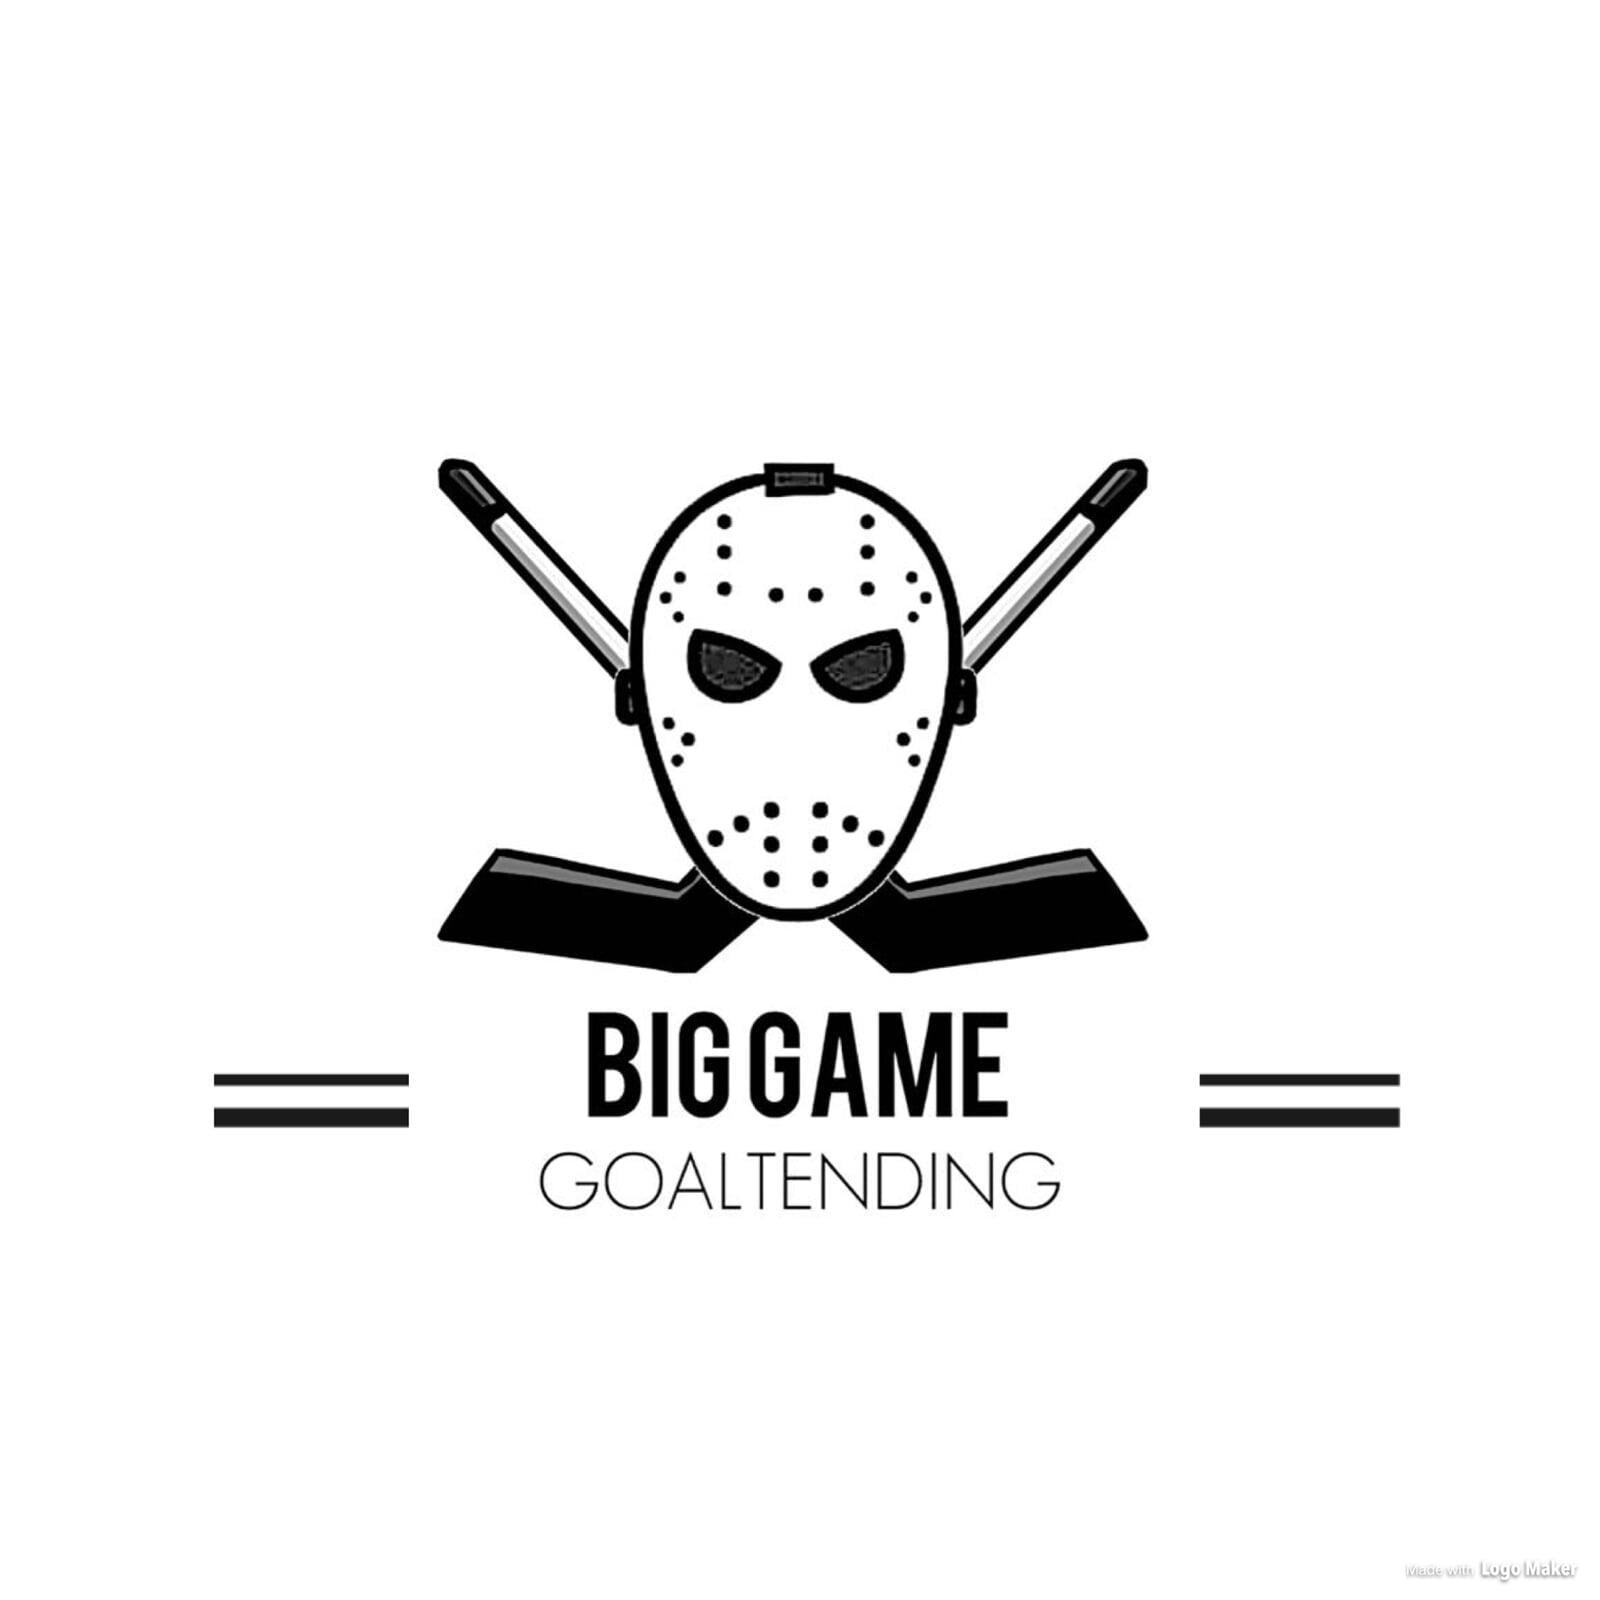 BIG GAME GOALTENDING